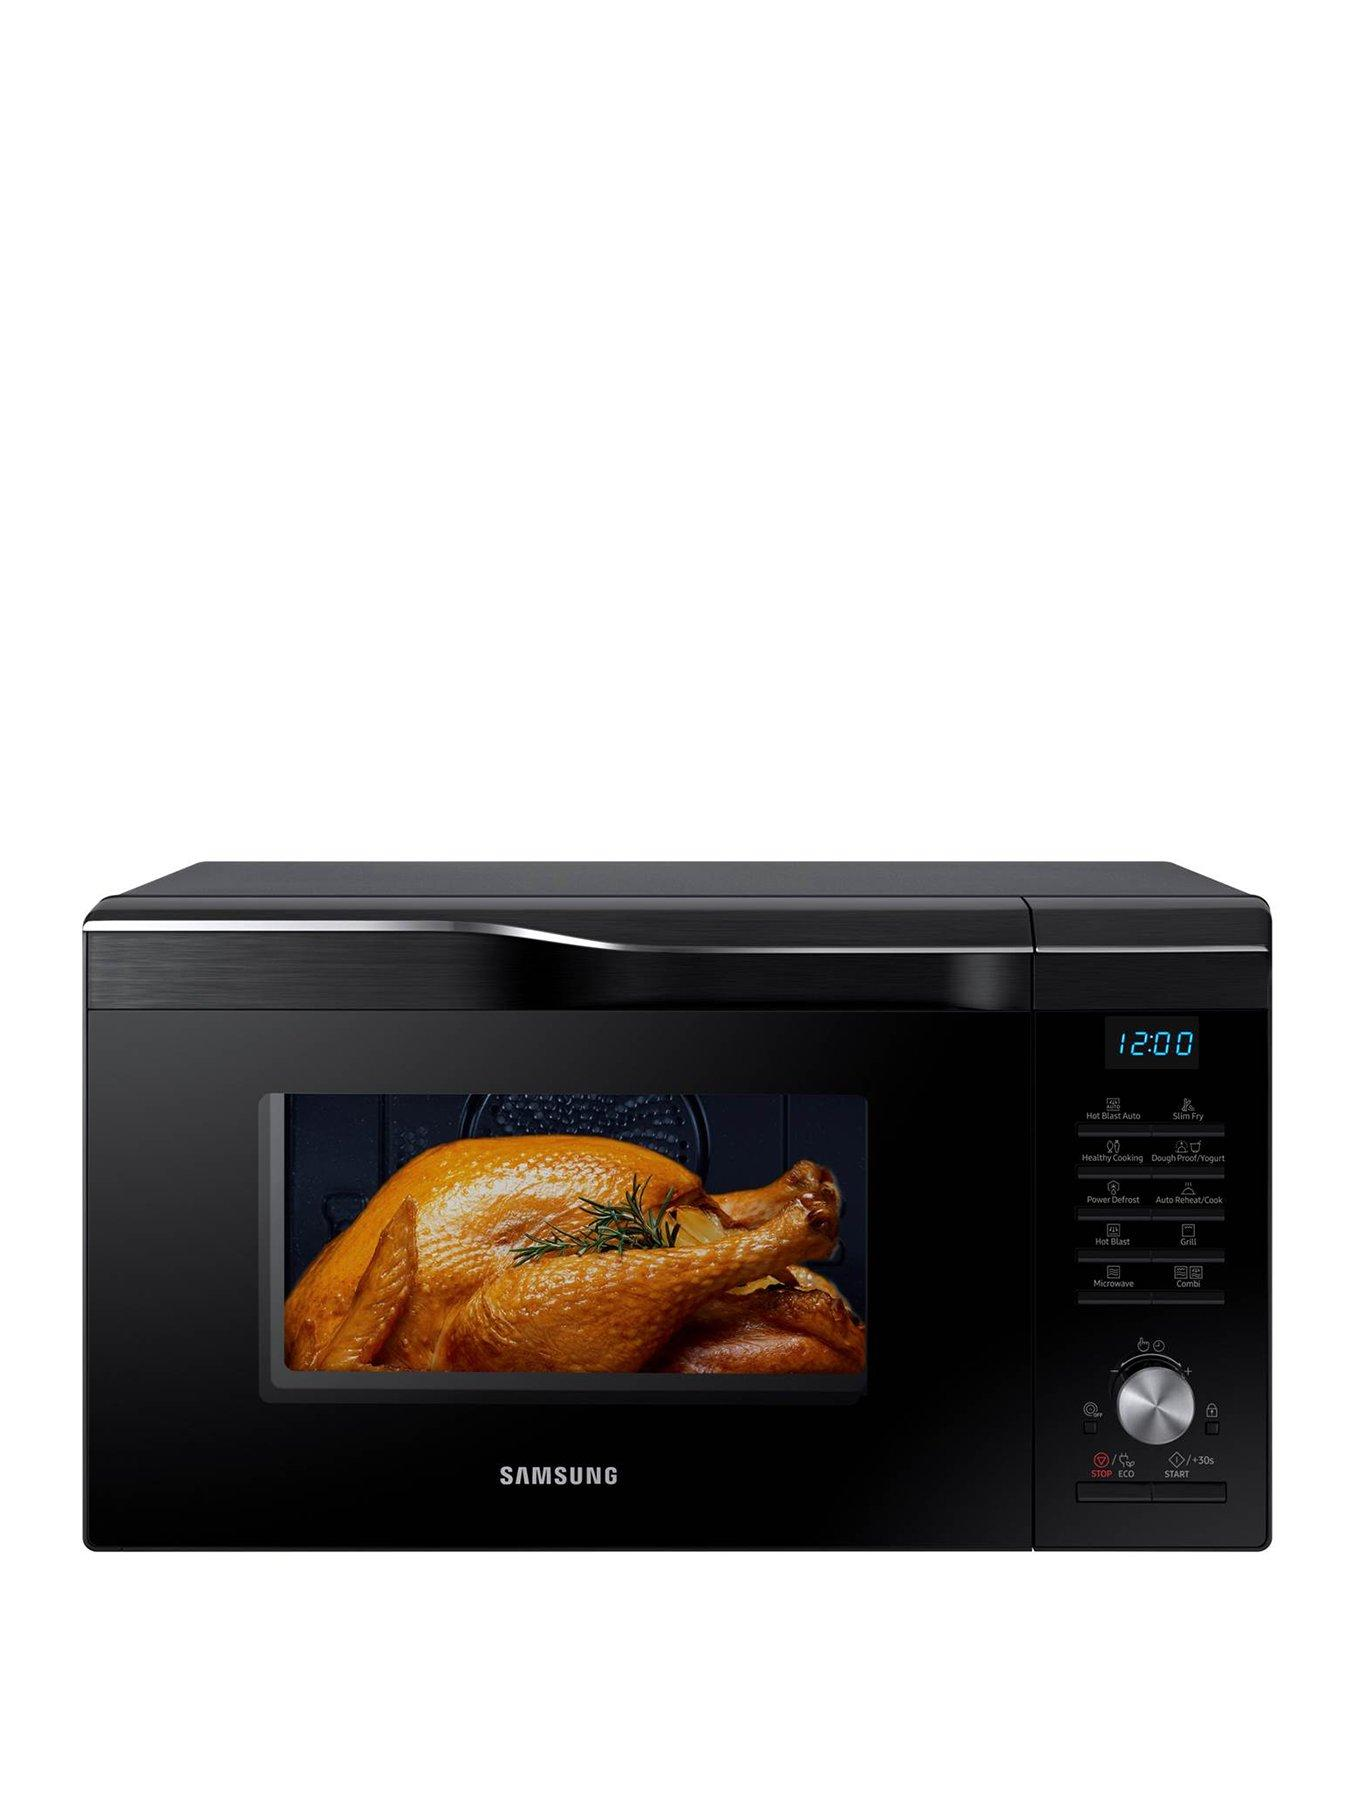 easy view mc28m6055ck eu 28 litre combination microwave oven with hotblast technology black